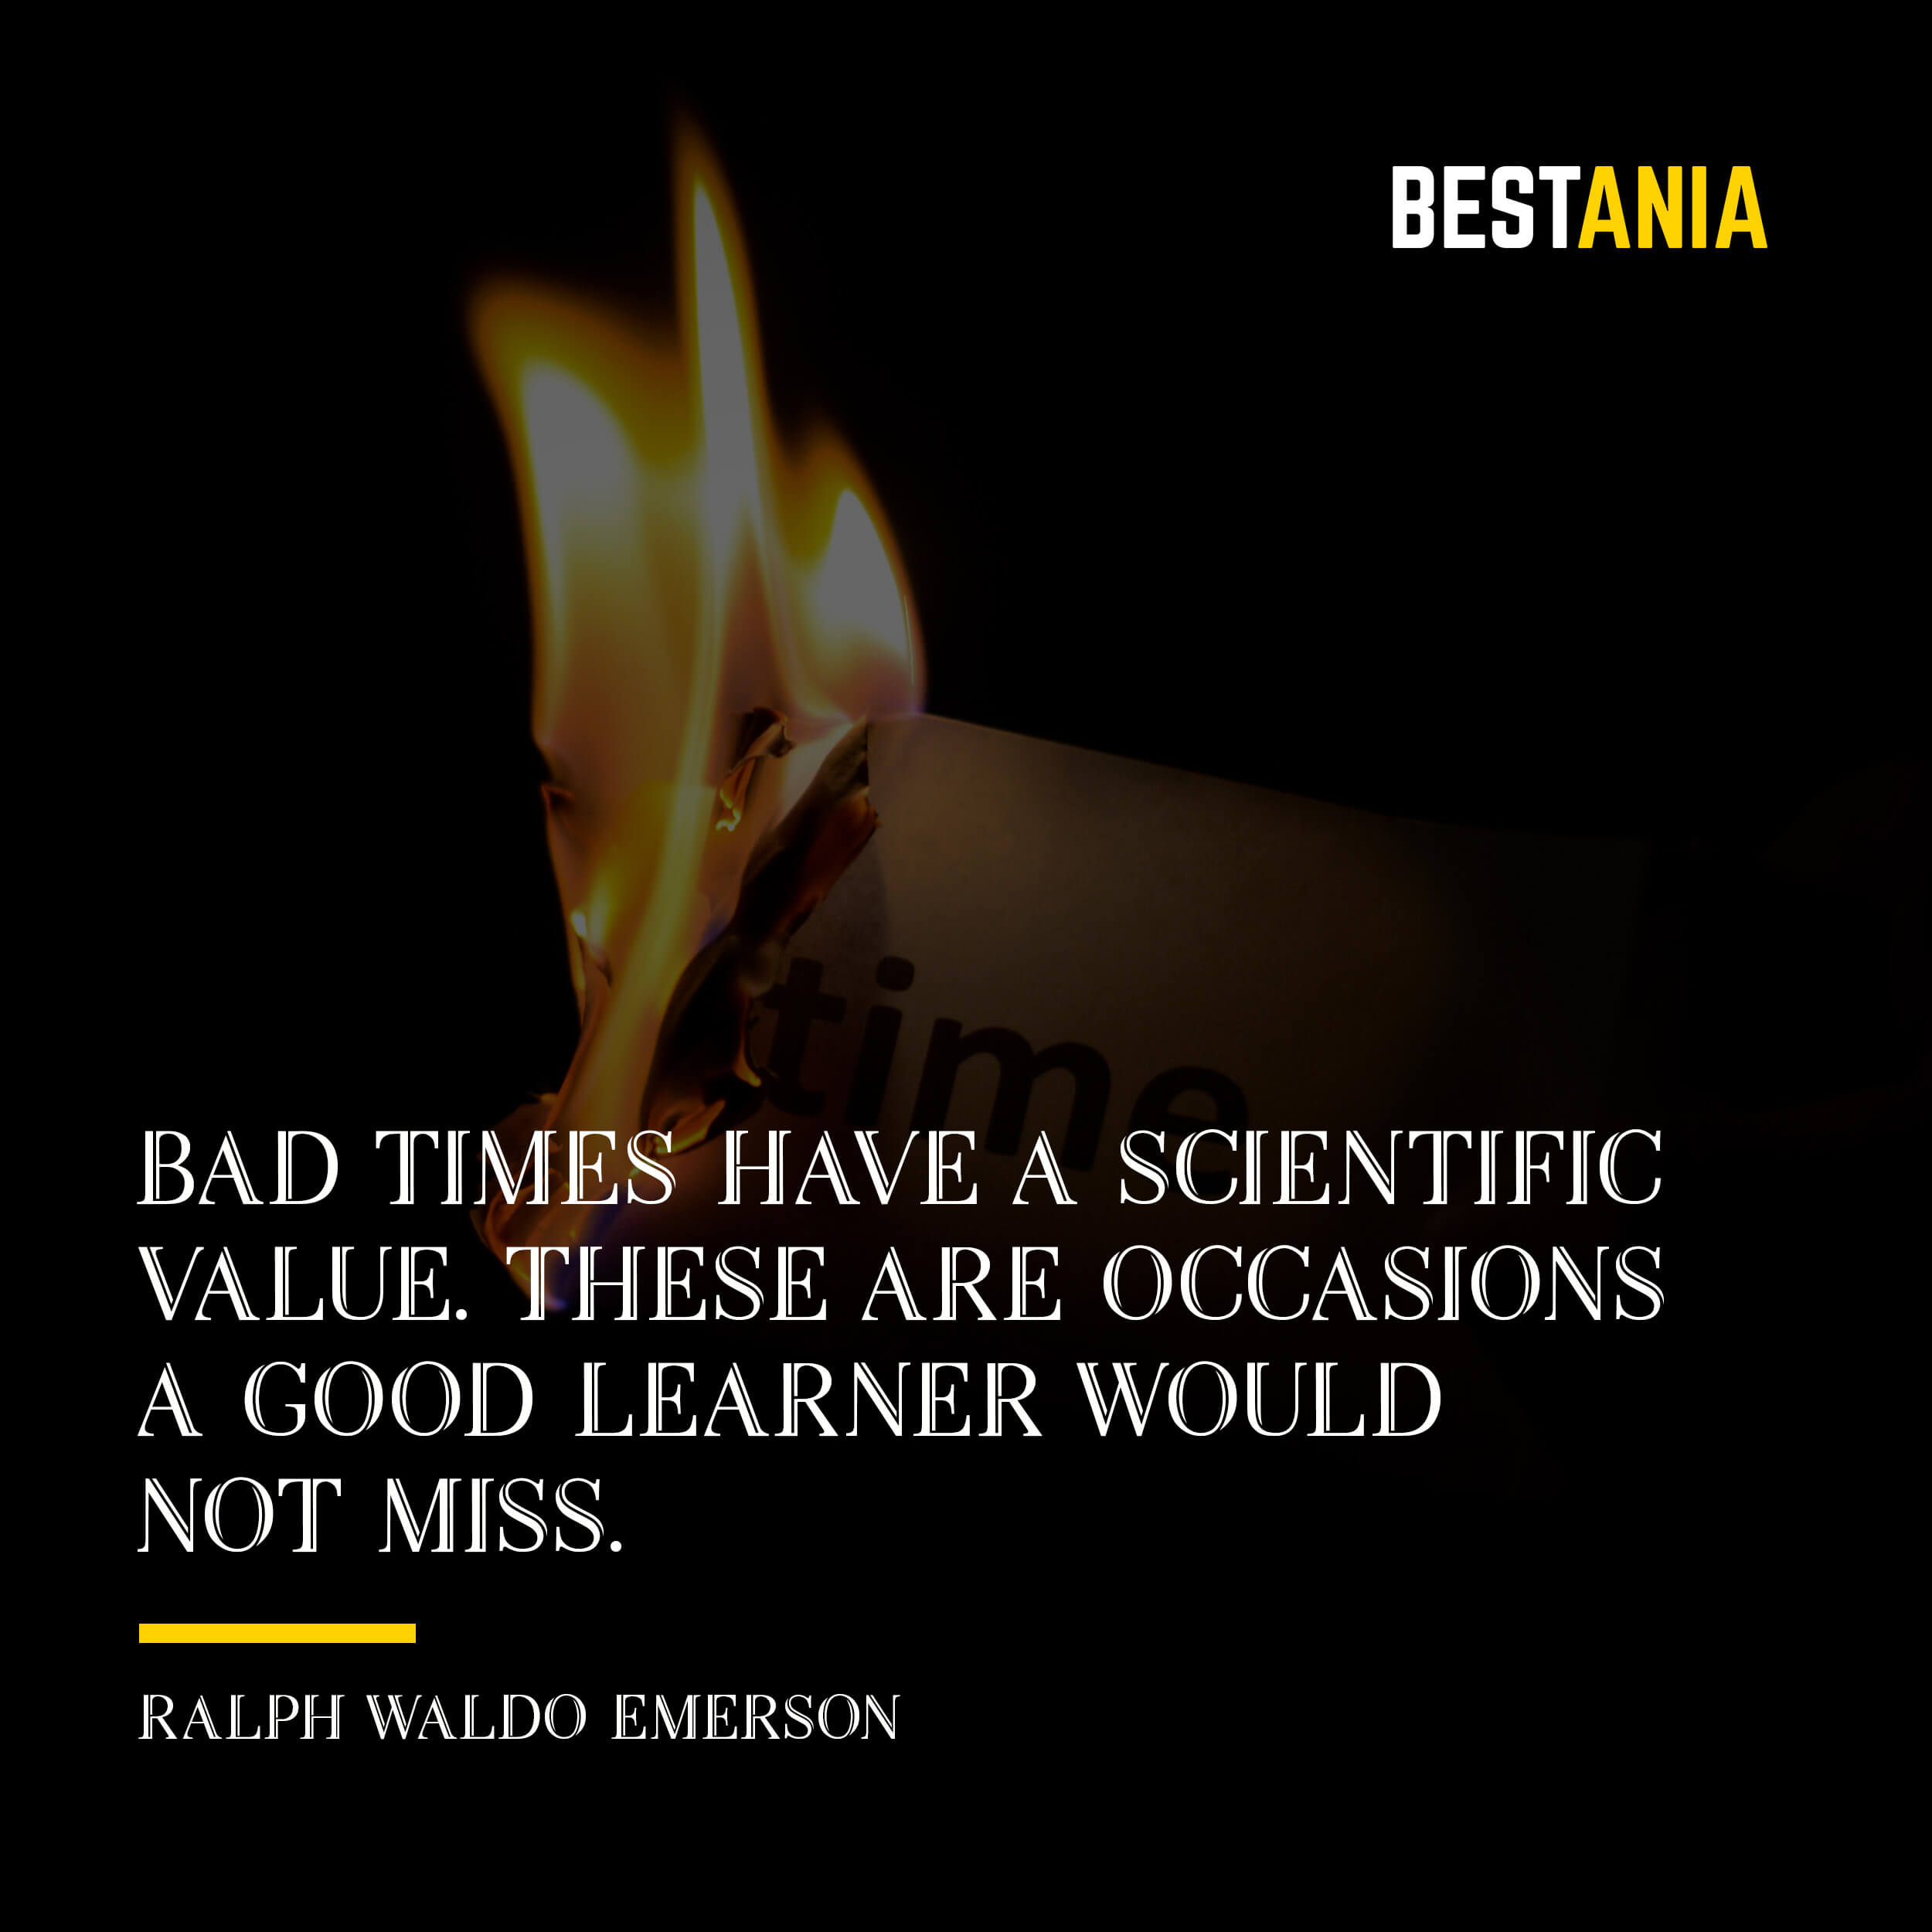 """BAD TIMES HAVE A SCIENTIFIC VALUE. THESE ARE OCCASIONS A GOOD LEARNER WOULD NOT MISS."" RALPH WALDO EMERSON"